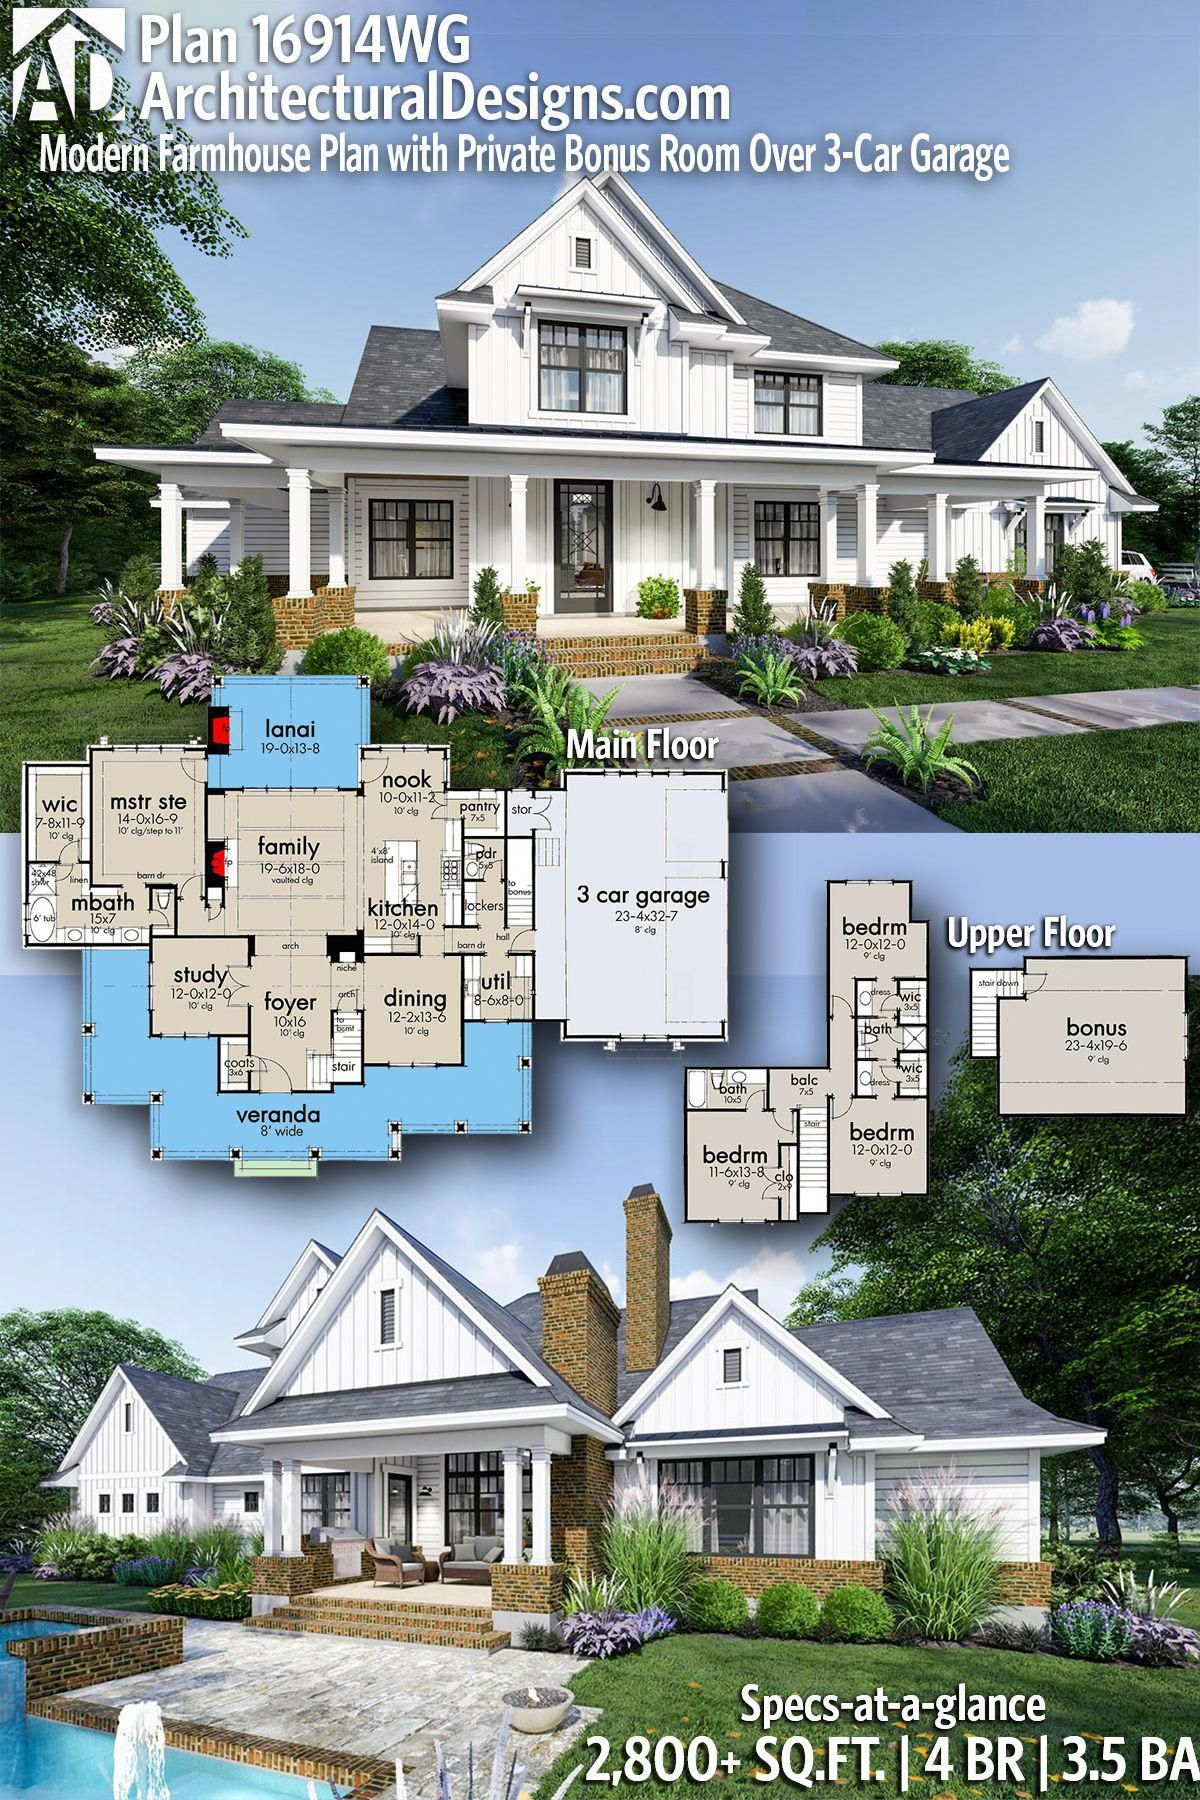 Architectural Designs New American Plan 16914wg Gives You 4 Bedrooms 3 5 Baths And 2 800 Sq Ft In 2020 Modern Farmhouse Plans Farmhouse Plans House Plans Farmhouse